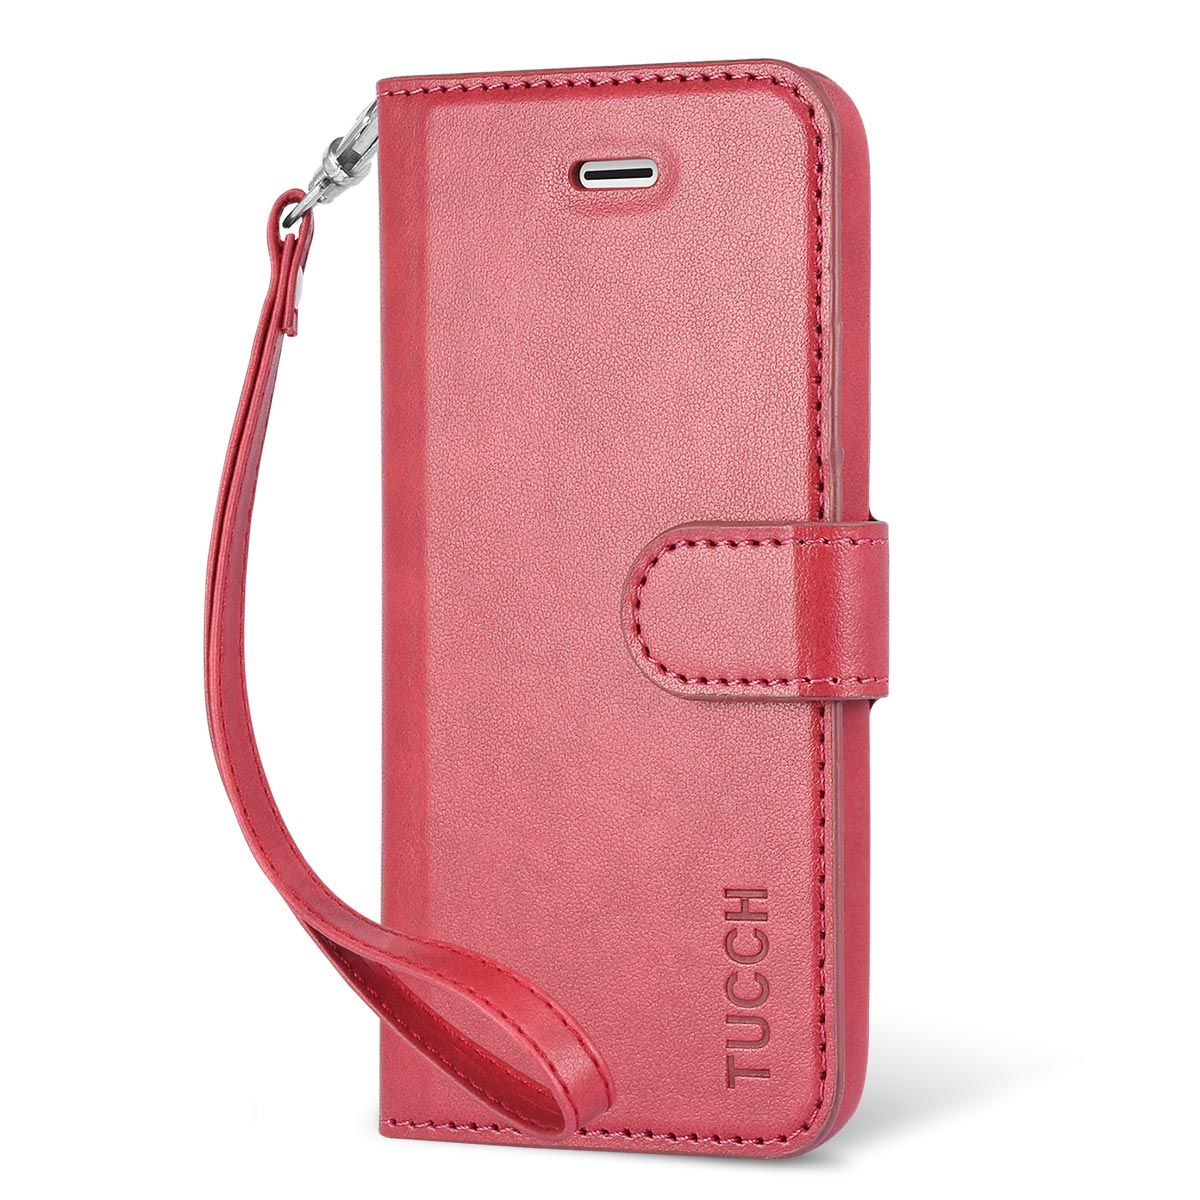 pretty nice c4a70 52192 TUCCH iPhone 5/5S/SE Case Leather Wallet Case, Flip Book Case Cover with  Stand & Credit Card